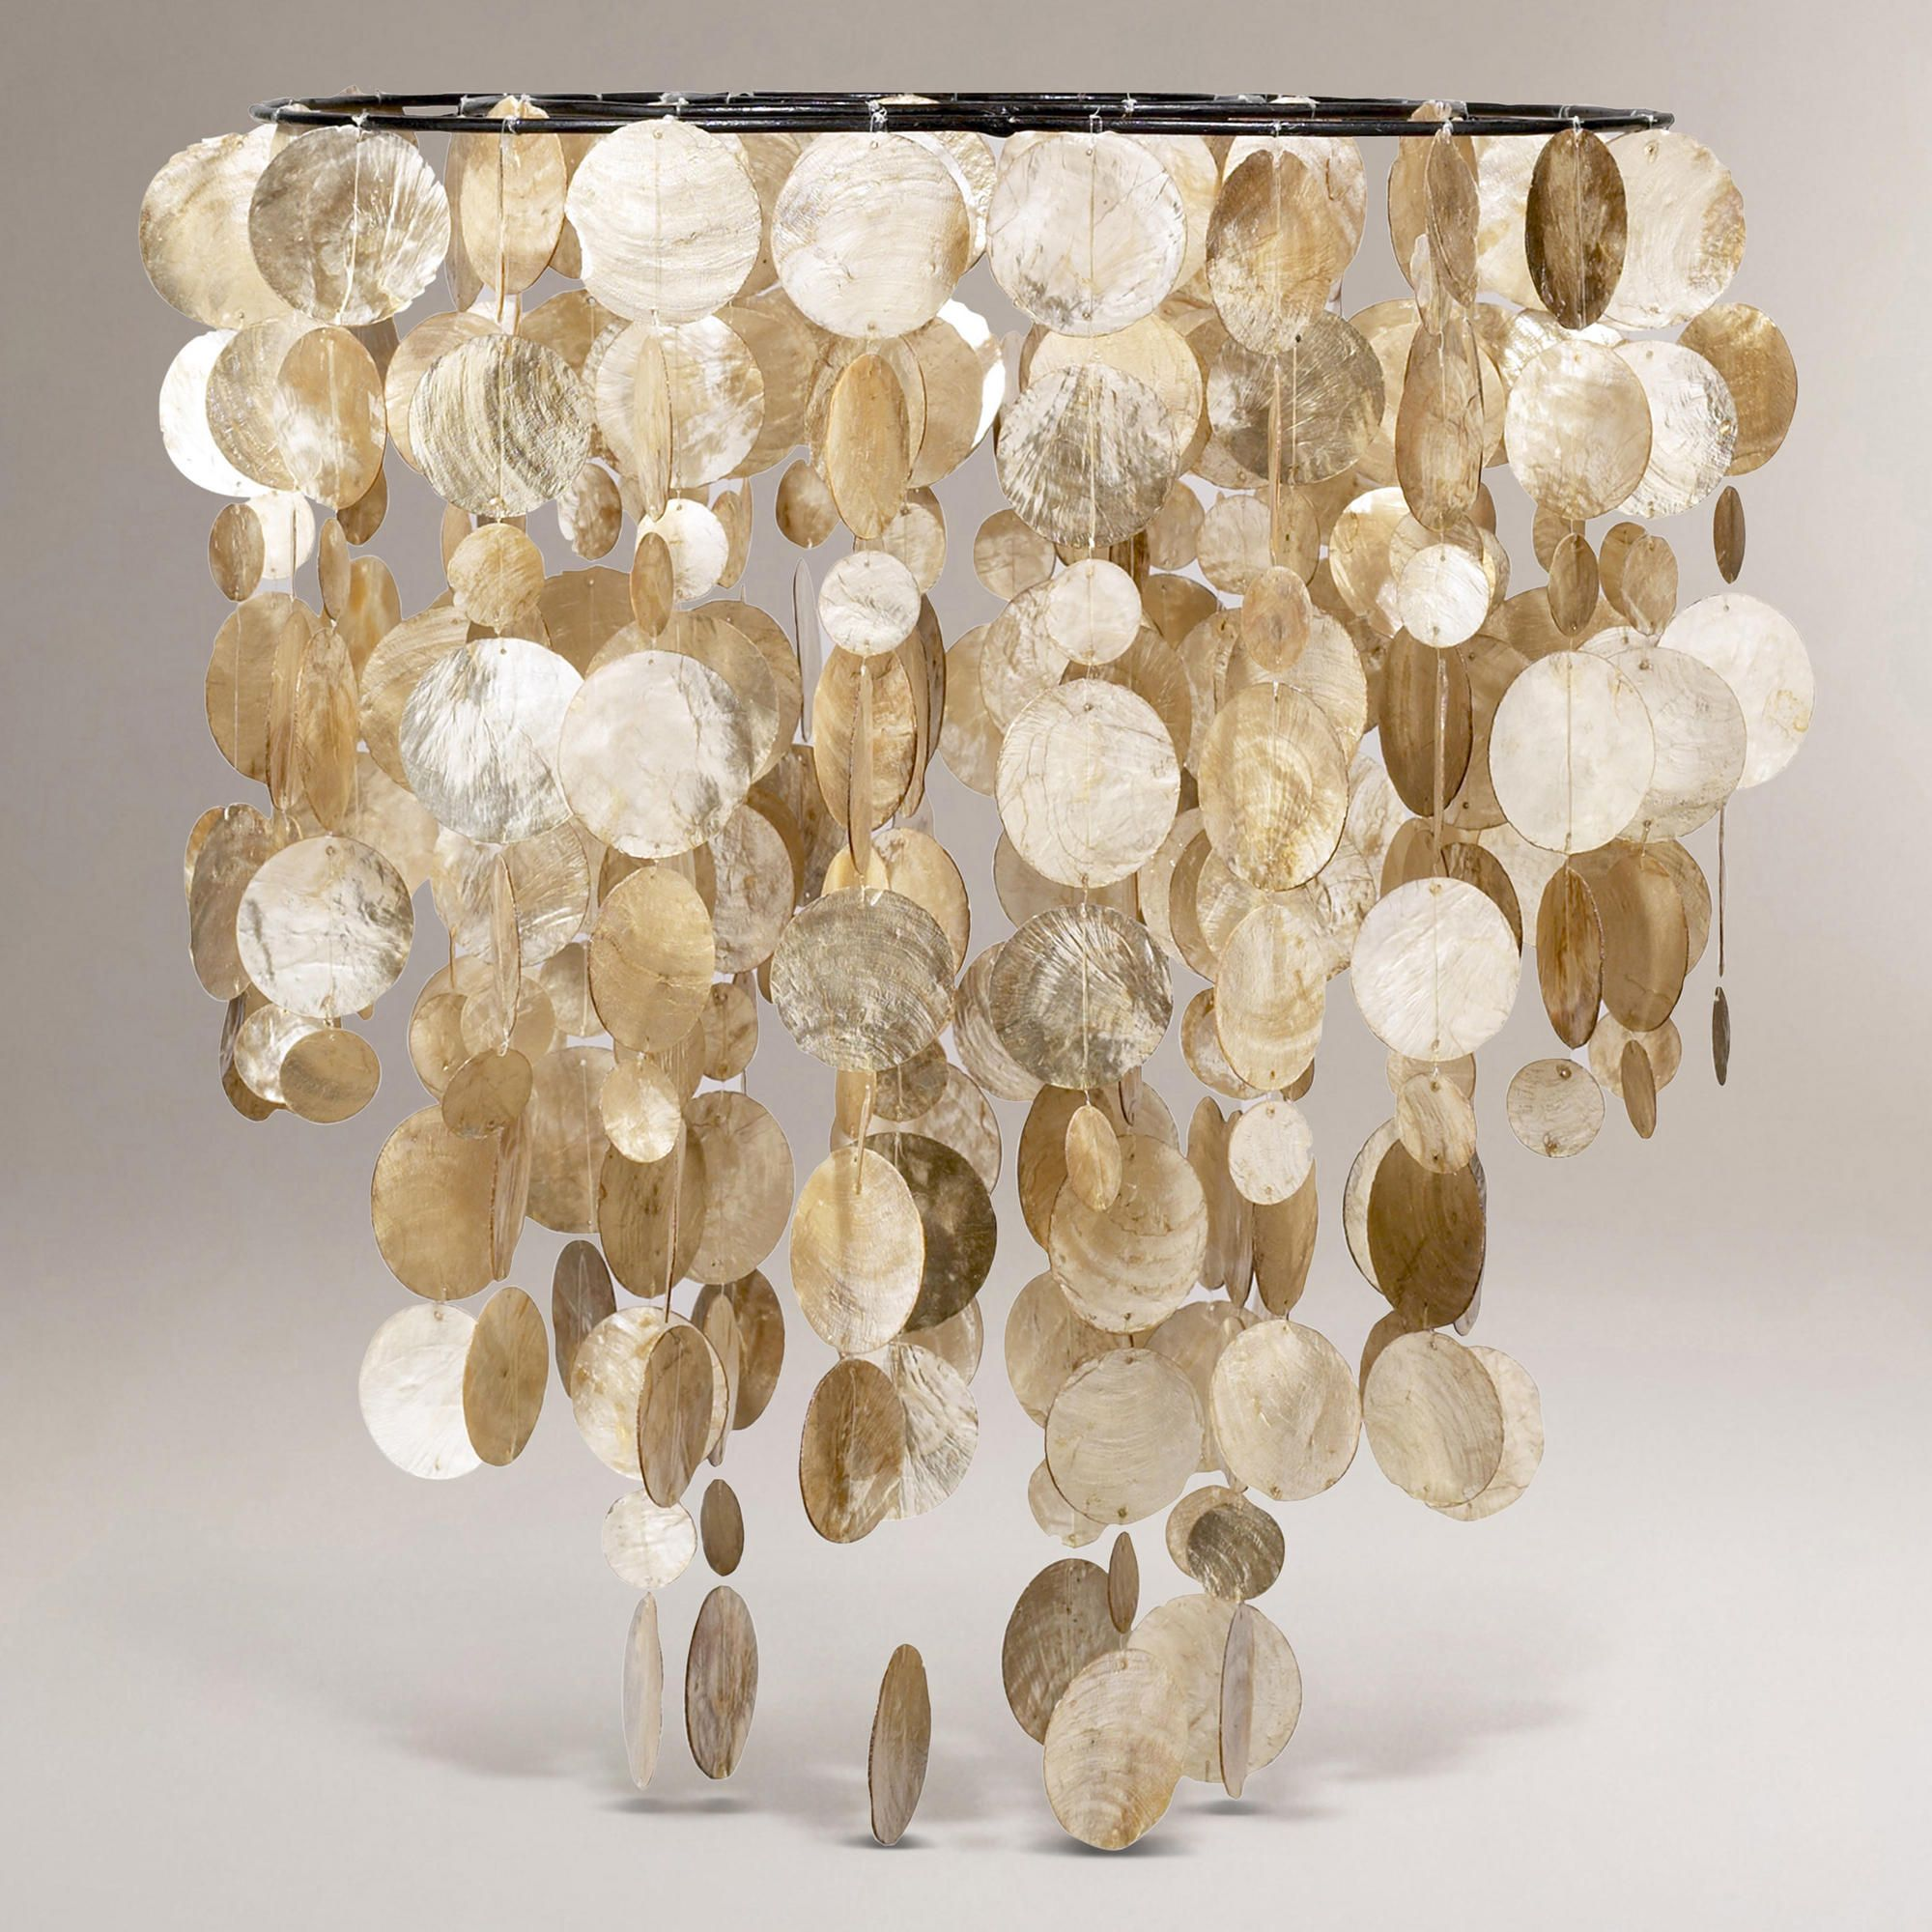 Kayley miller very pretty cheap chandy option capiz hanging kayley miller very pretty cheap chandy option capiz hanging pendant world market ceiling pendantpendant lightingceiling mozeypictures Image collections